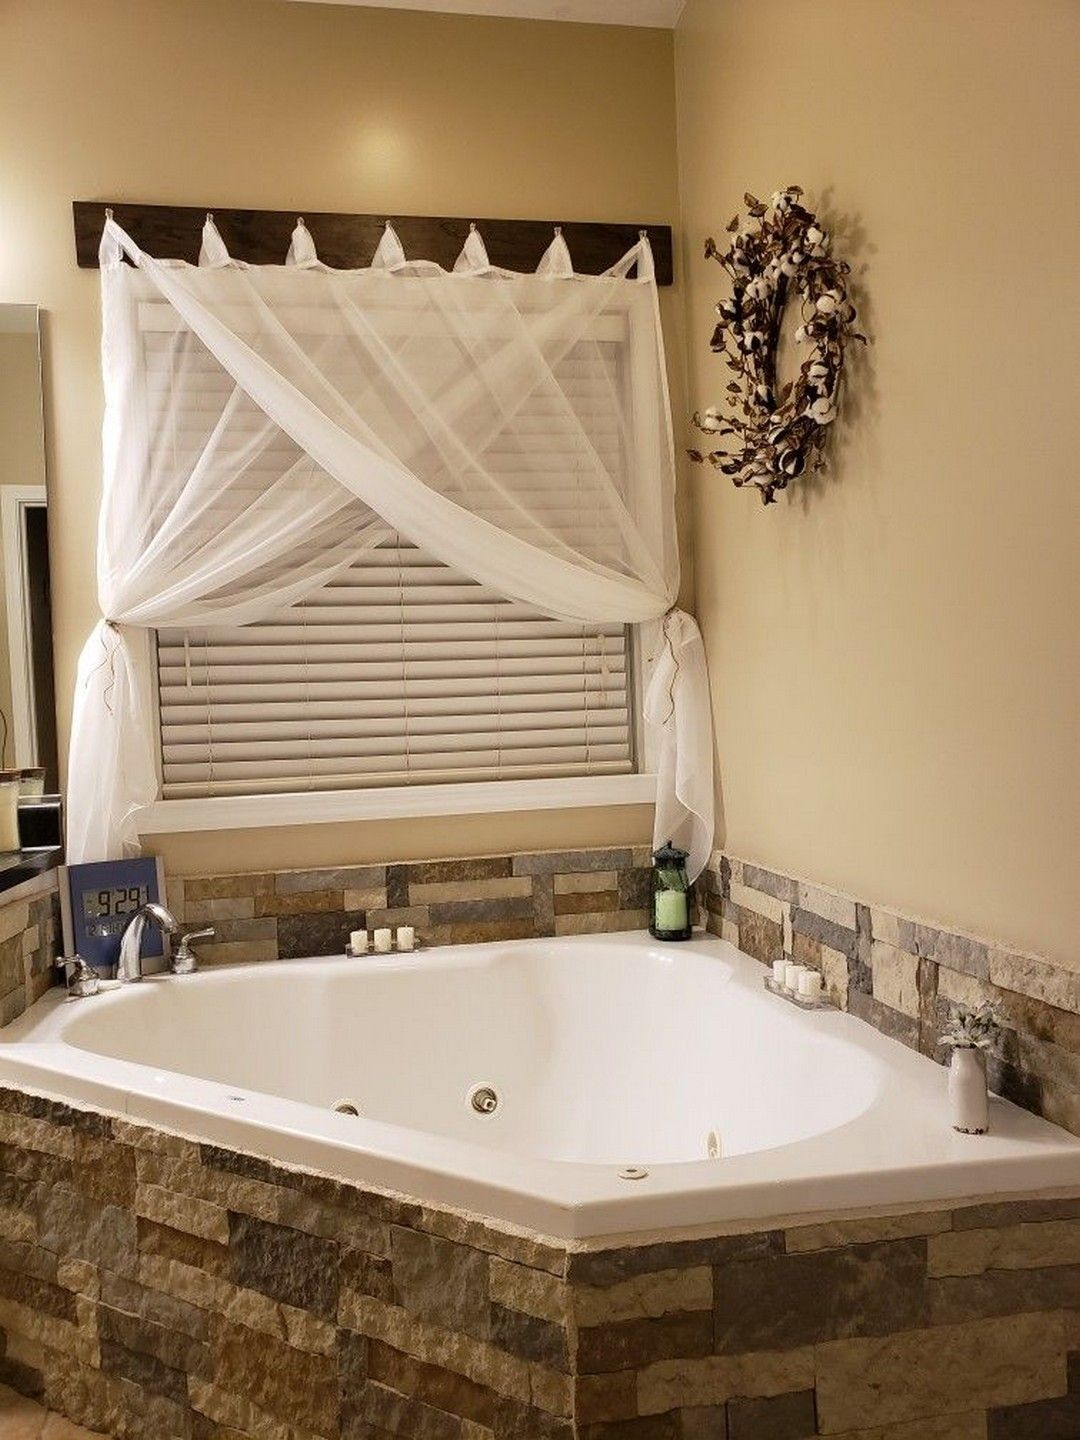 18 Easily Update Your Boring Built-in Bathtub With ...